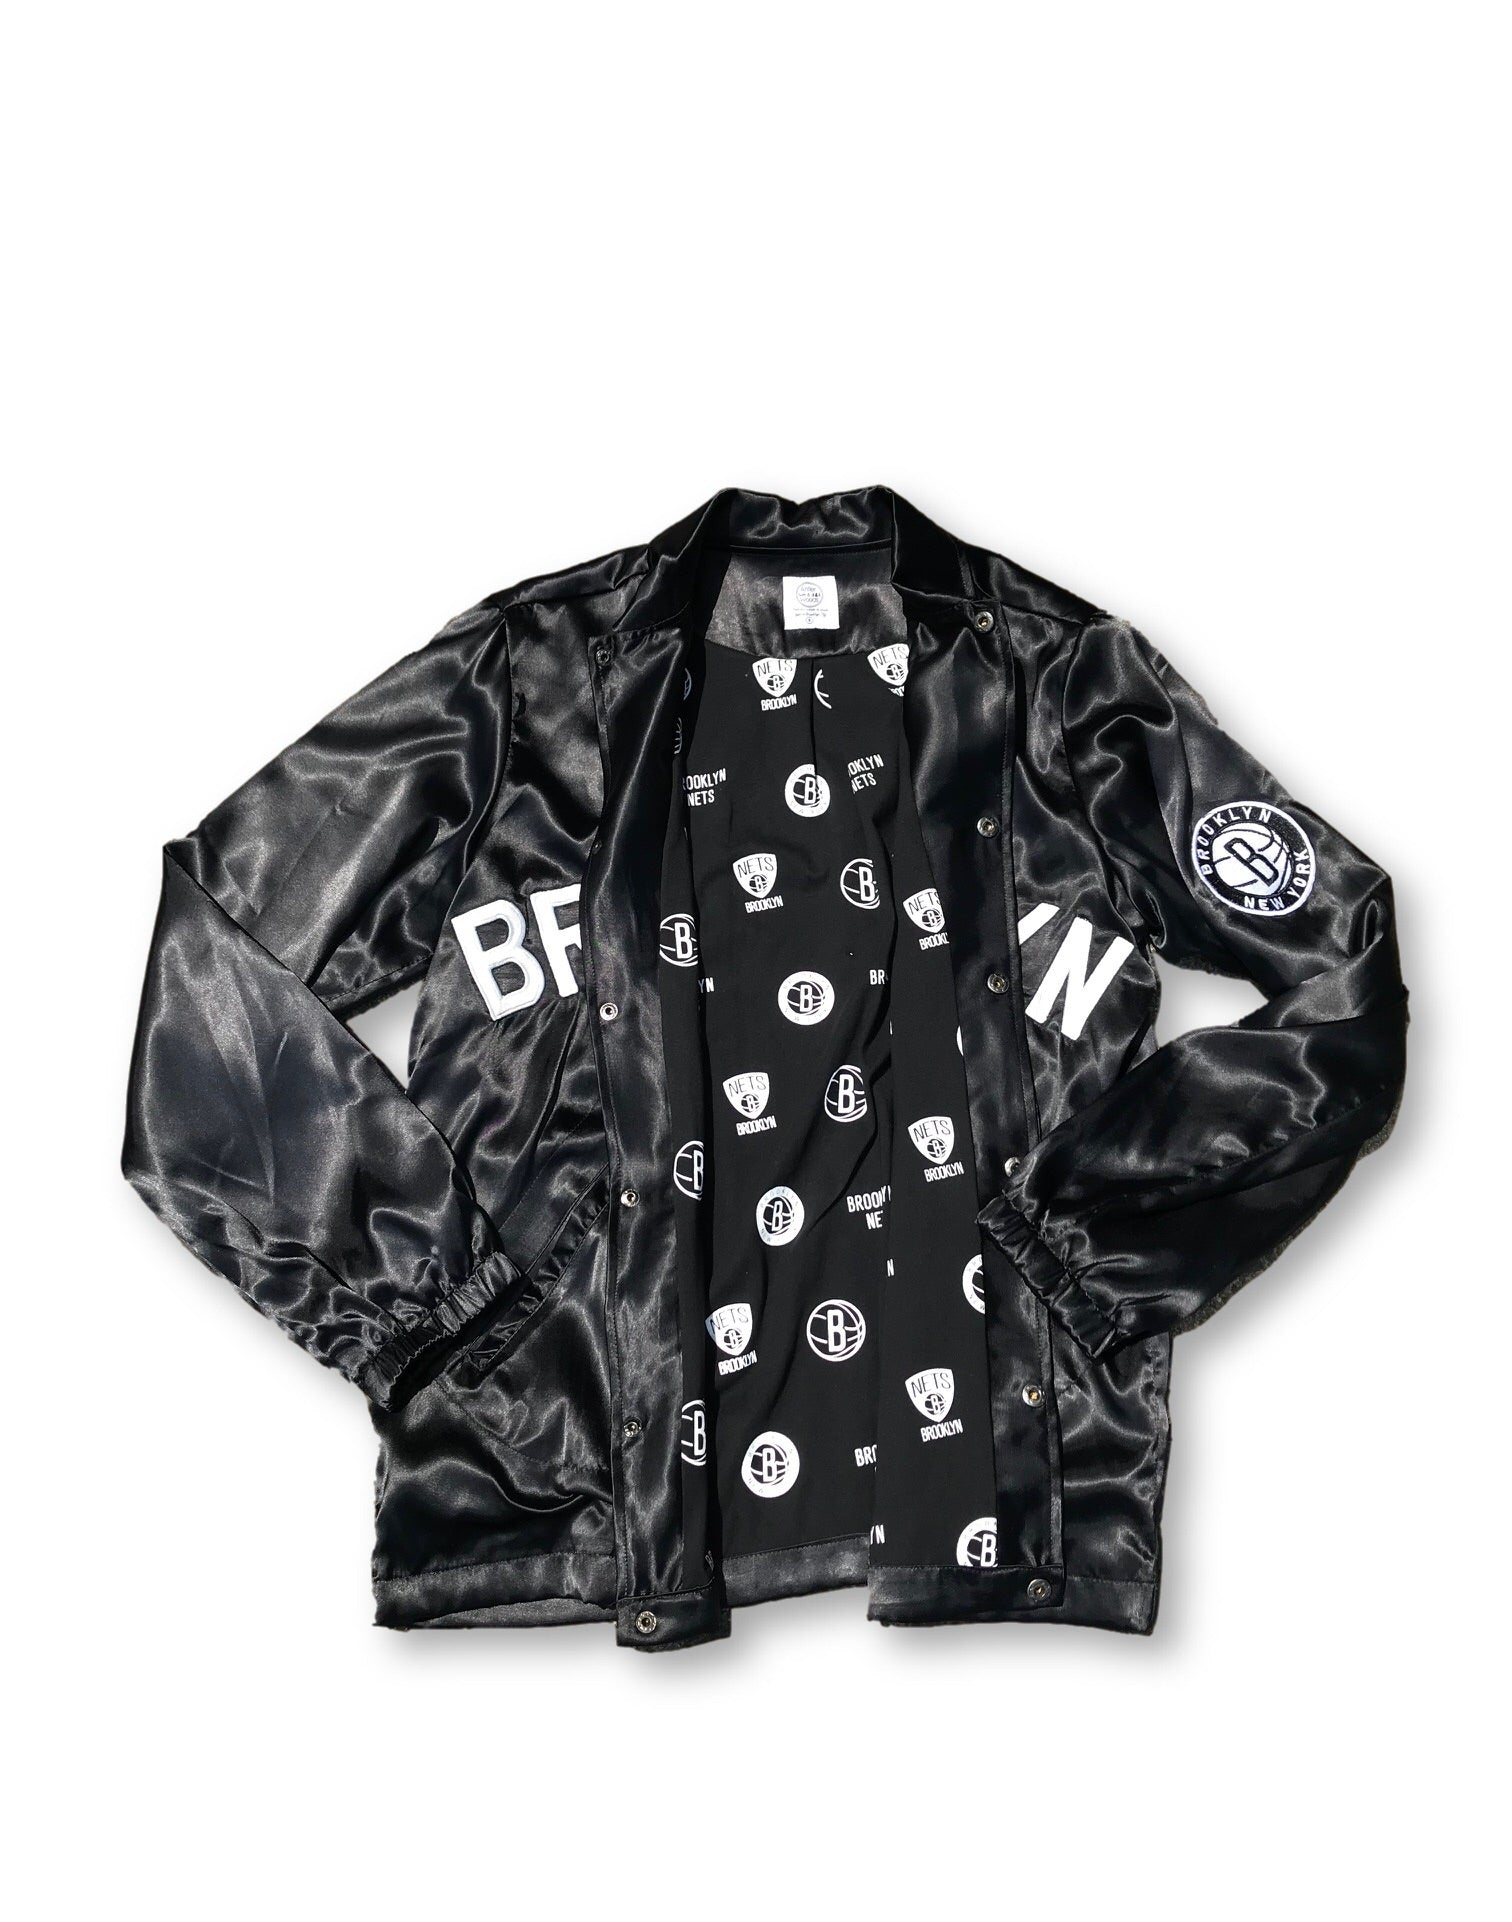 Antler & Woods x Brooklyn Nets Satin Coaches Jacket